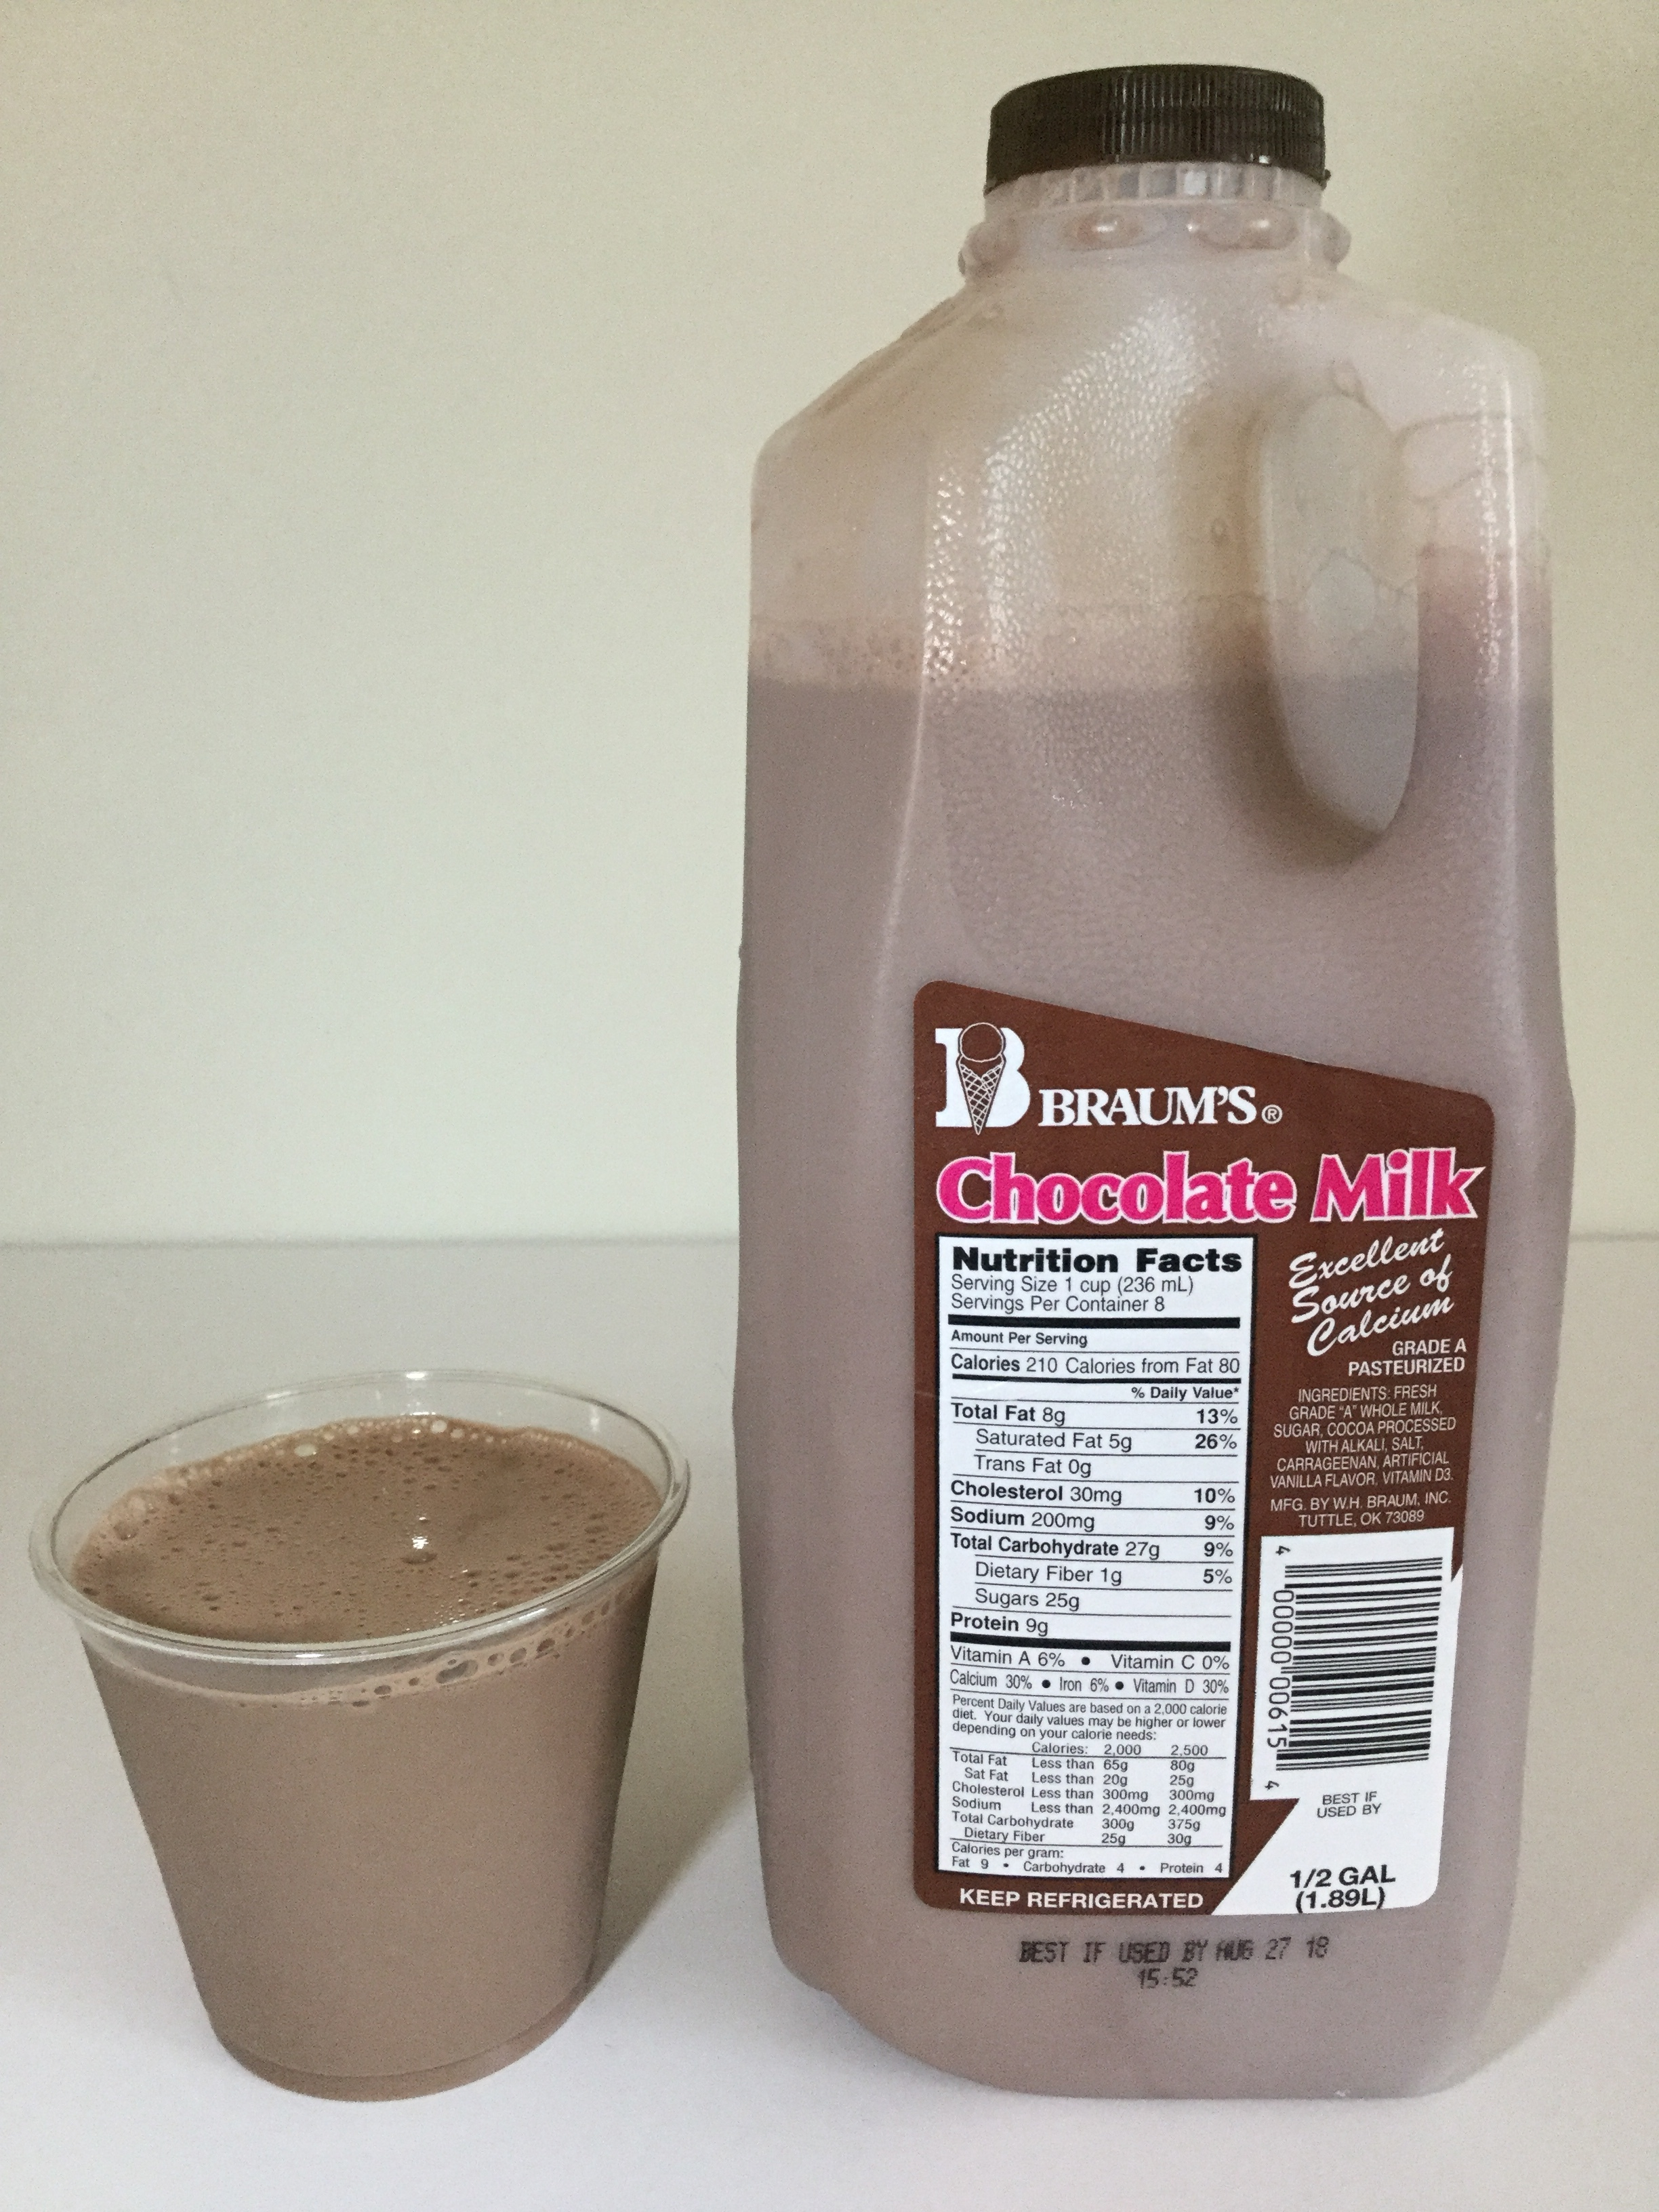 Braum's Chocolate Milk Cup